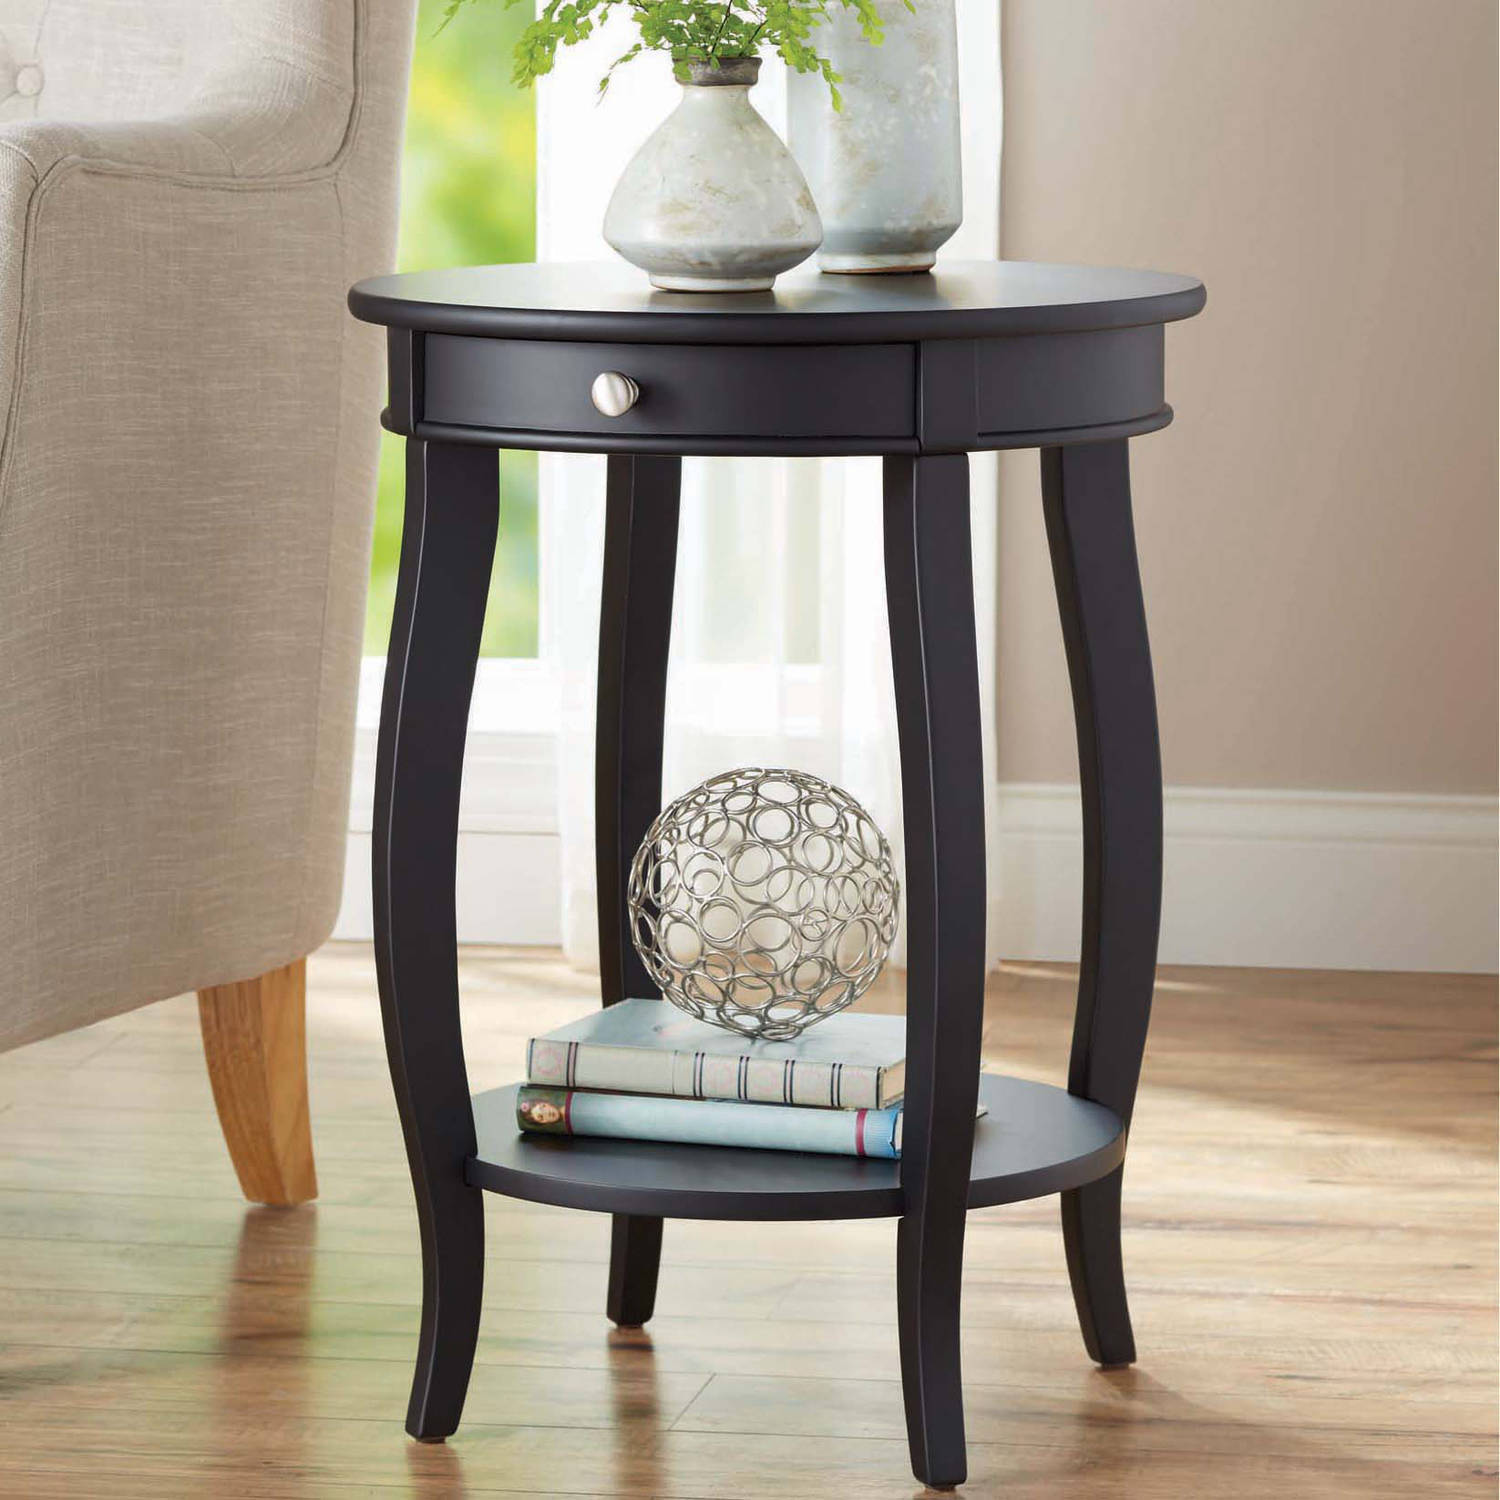 better homes gardens round accent table with drawer multiple grey wood colors nautical themed outdoor lighting small space bedroom furniture contemporary cocktail old door ideas